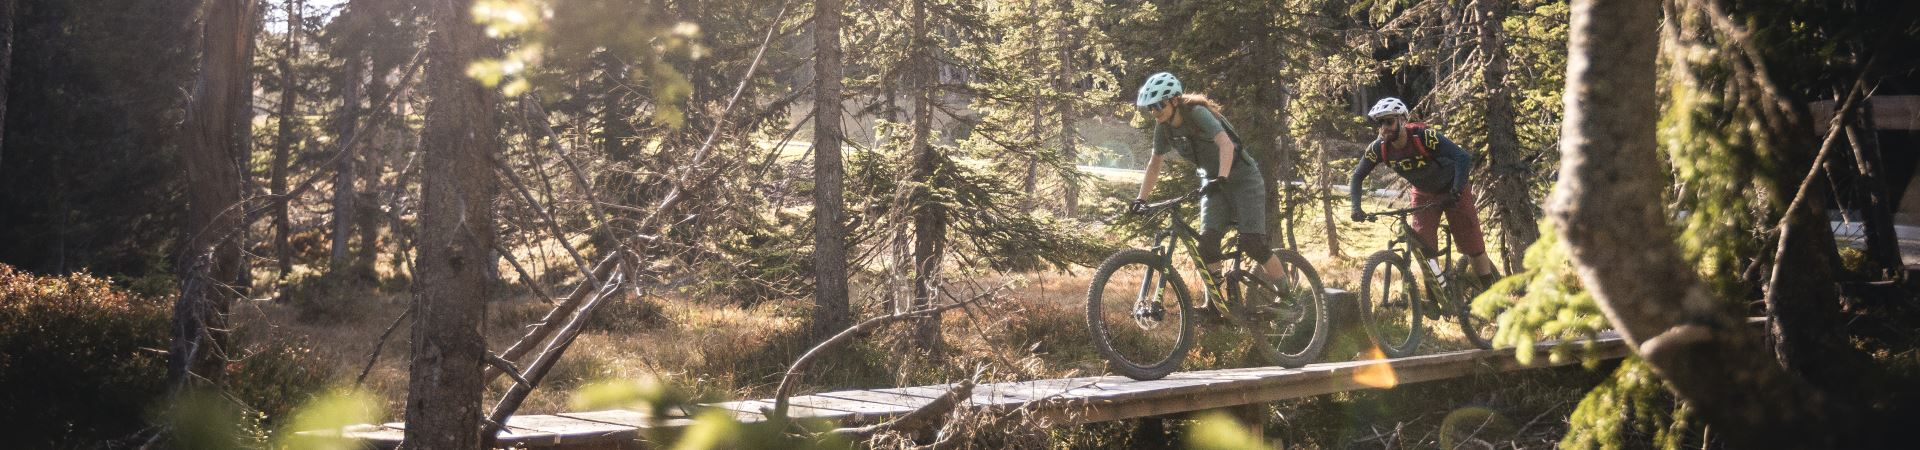 Mountainbike & Bike in Leogang